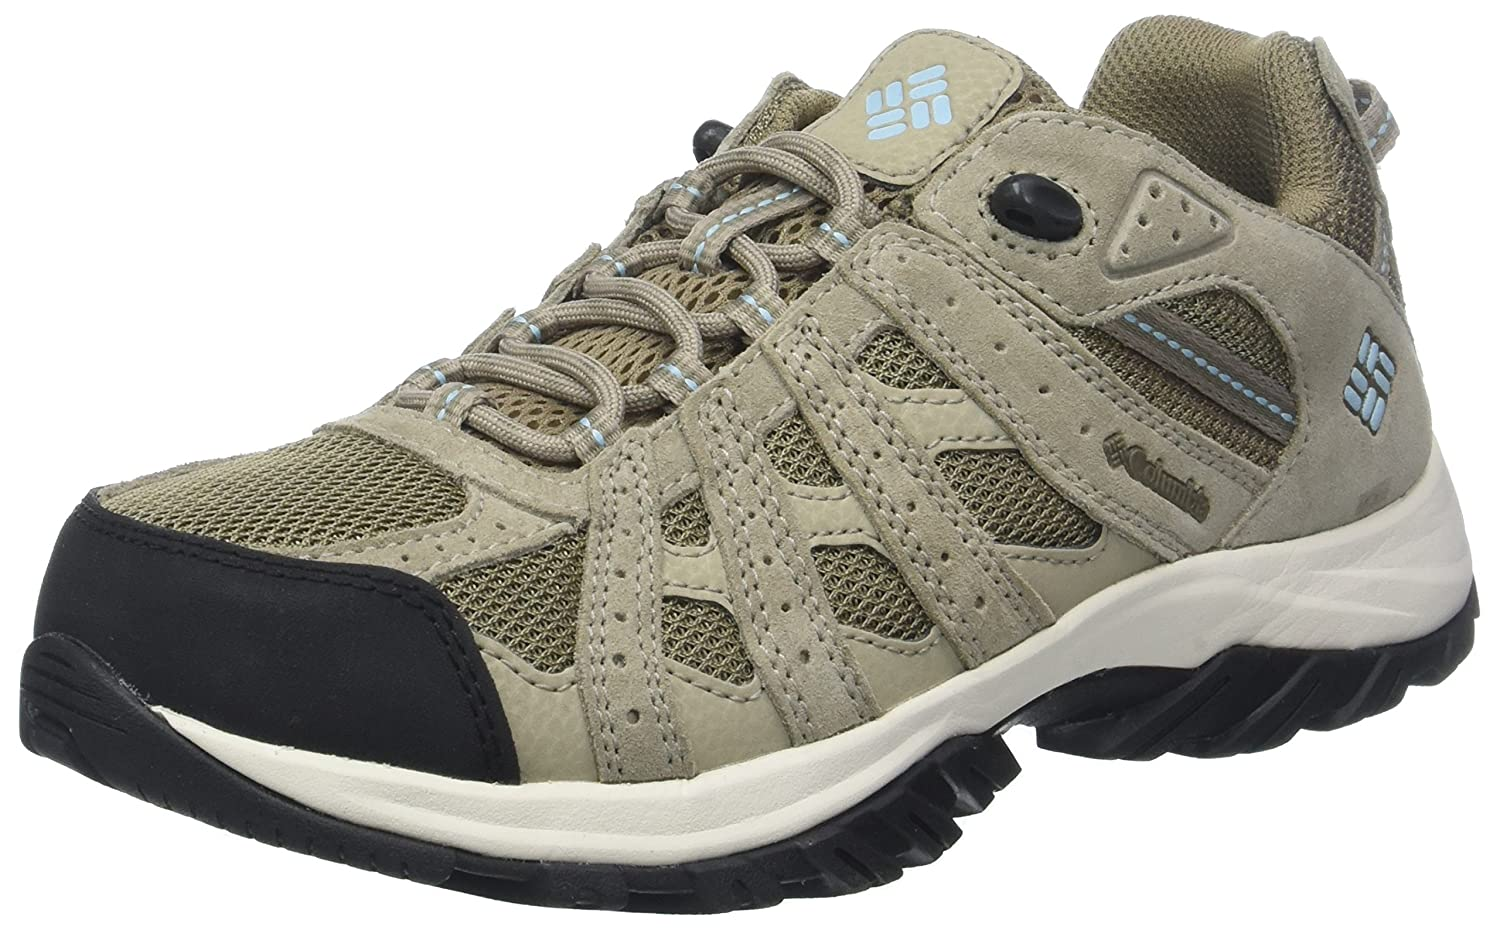 TALLA 37 EU. Columbia Canyon Point Waterproof, Zapatillas de Senderismo, Impermeable para Mujer